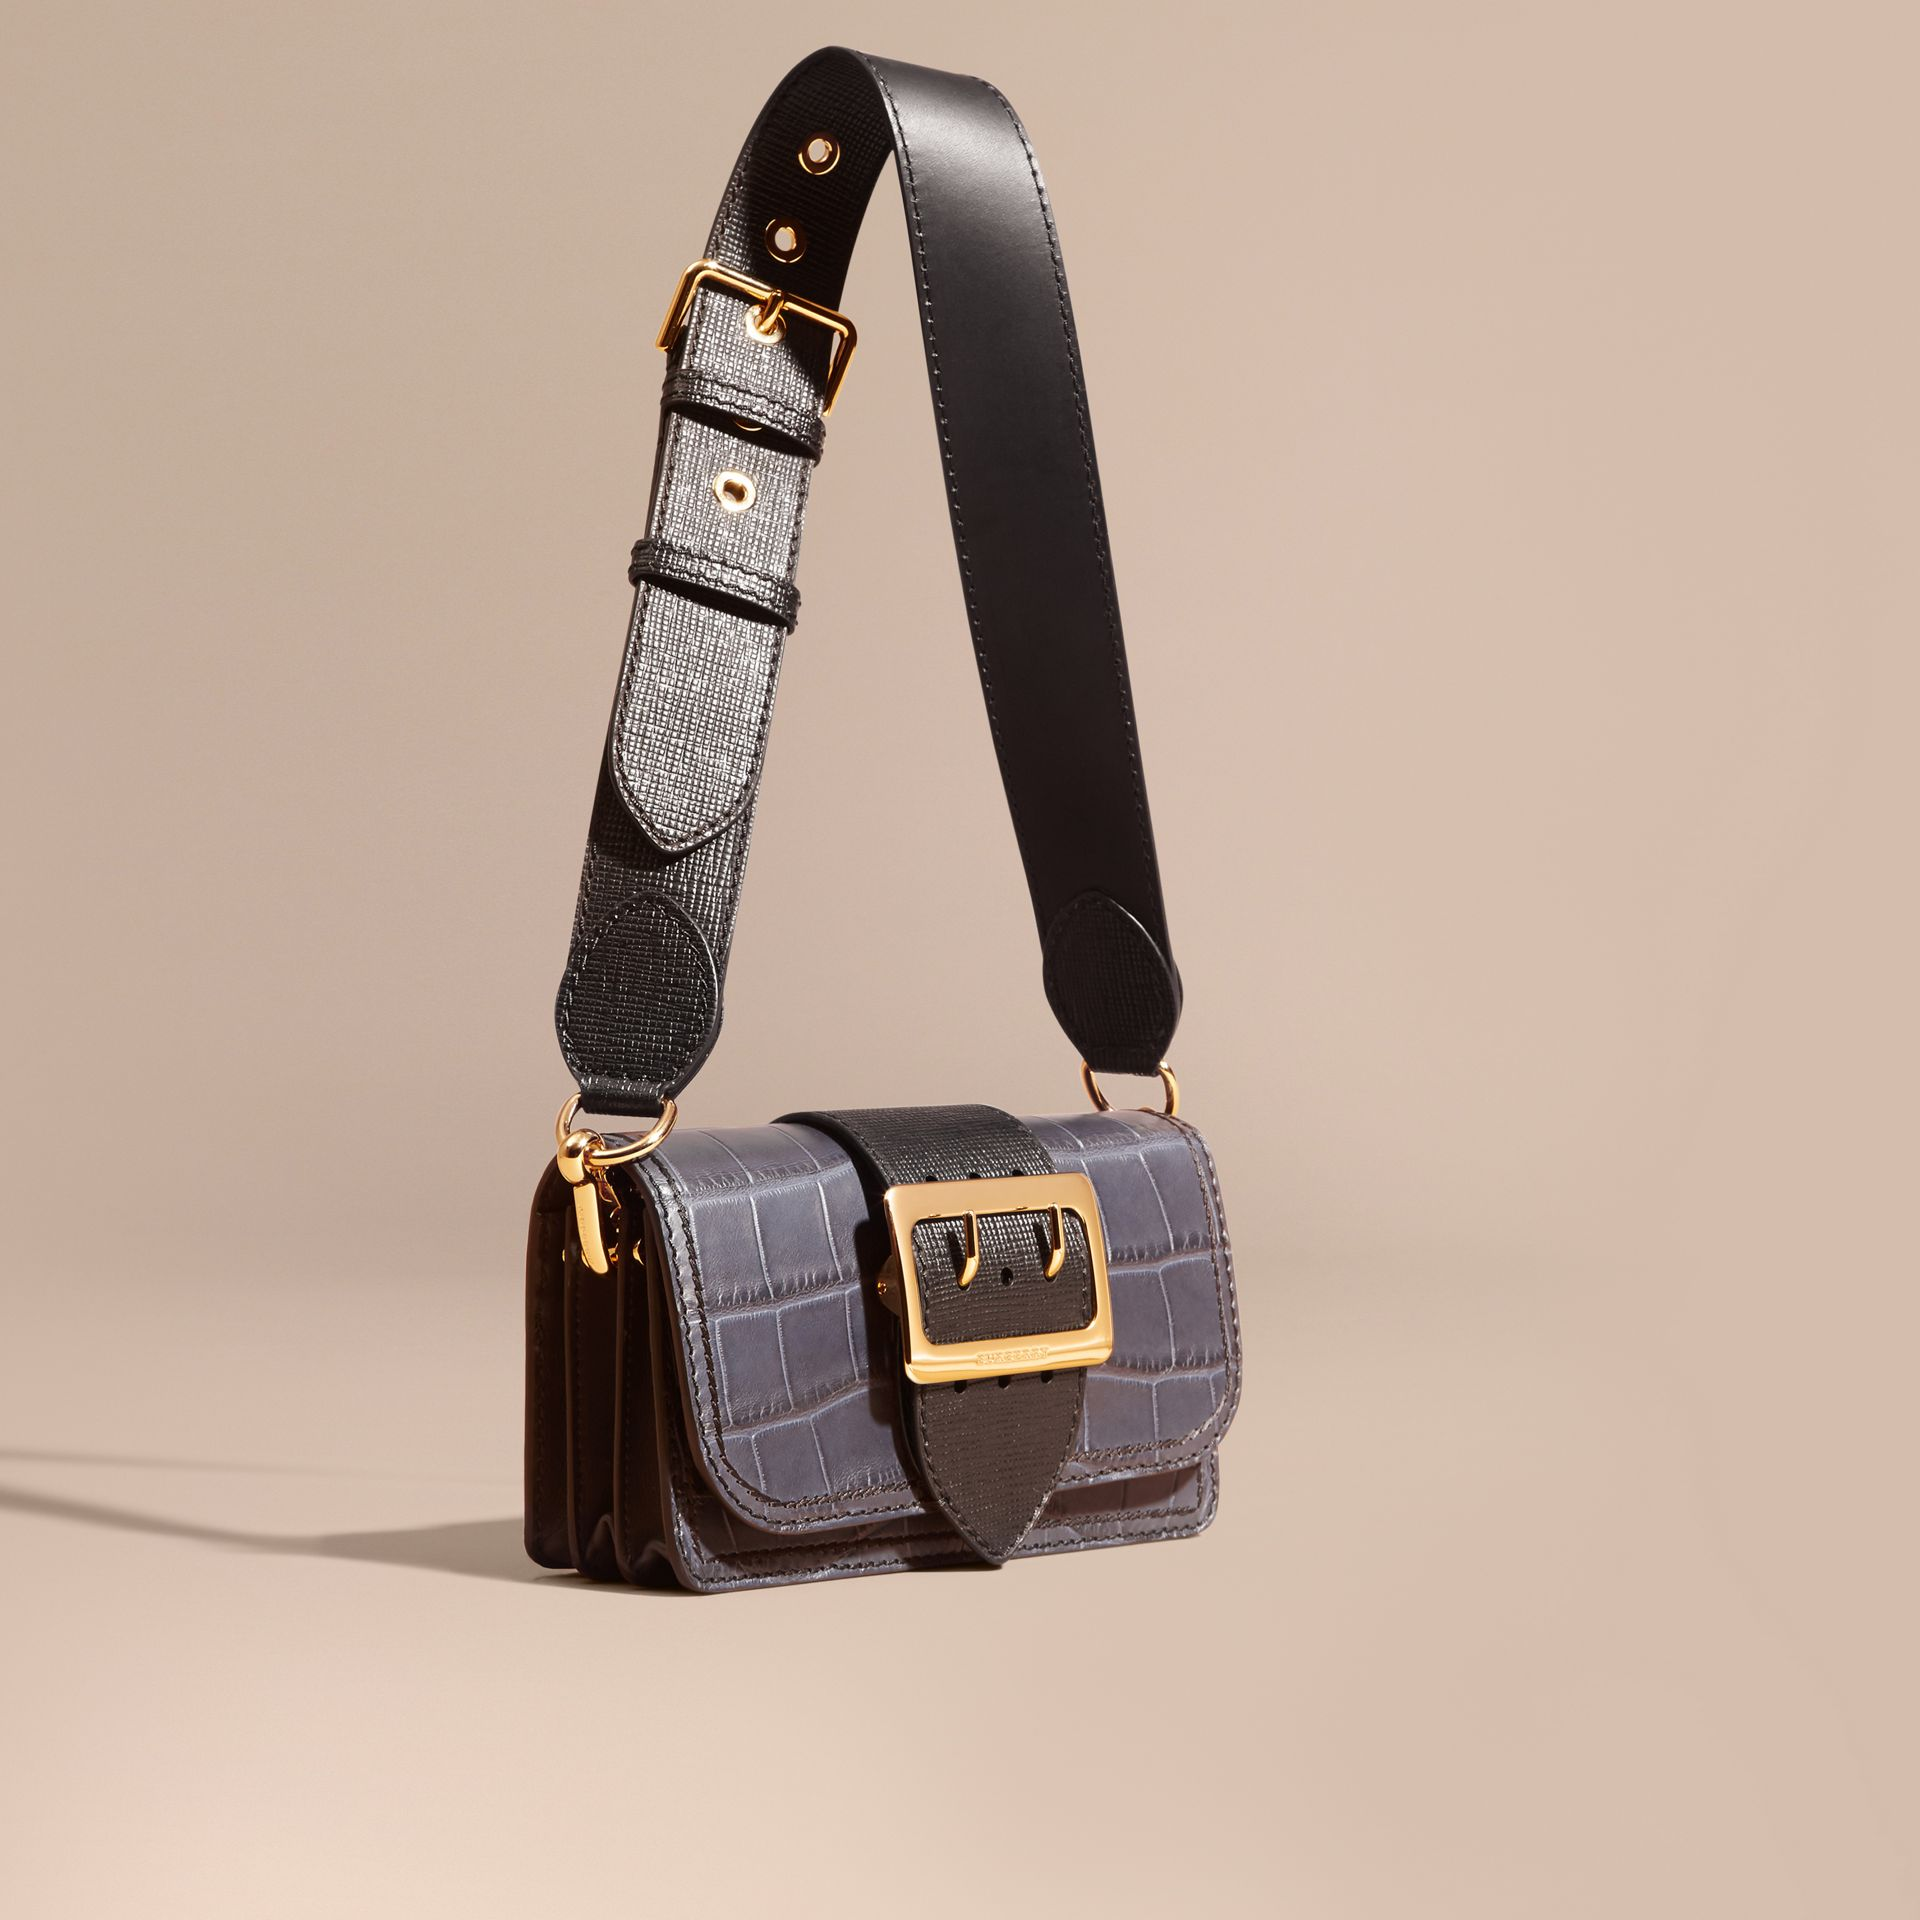 The Small Buckle Bag in Alligator and Leather in Navy / Black - Women | Burberry - gallery image 9